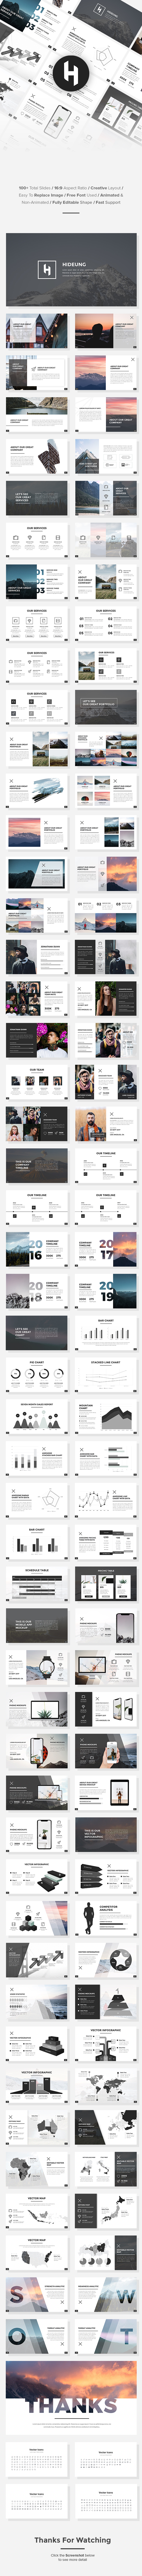 GraphicRiver Hideung Pitch Deck Google Slides Template 21076280